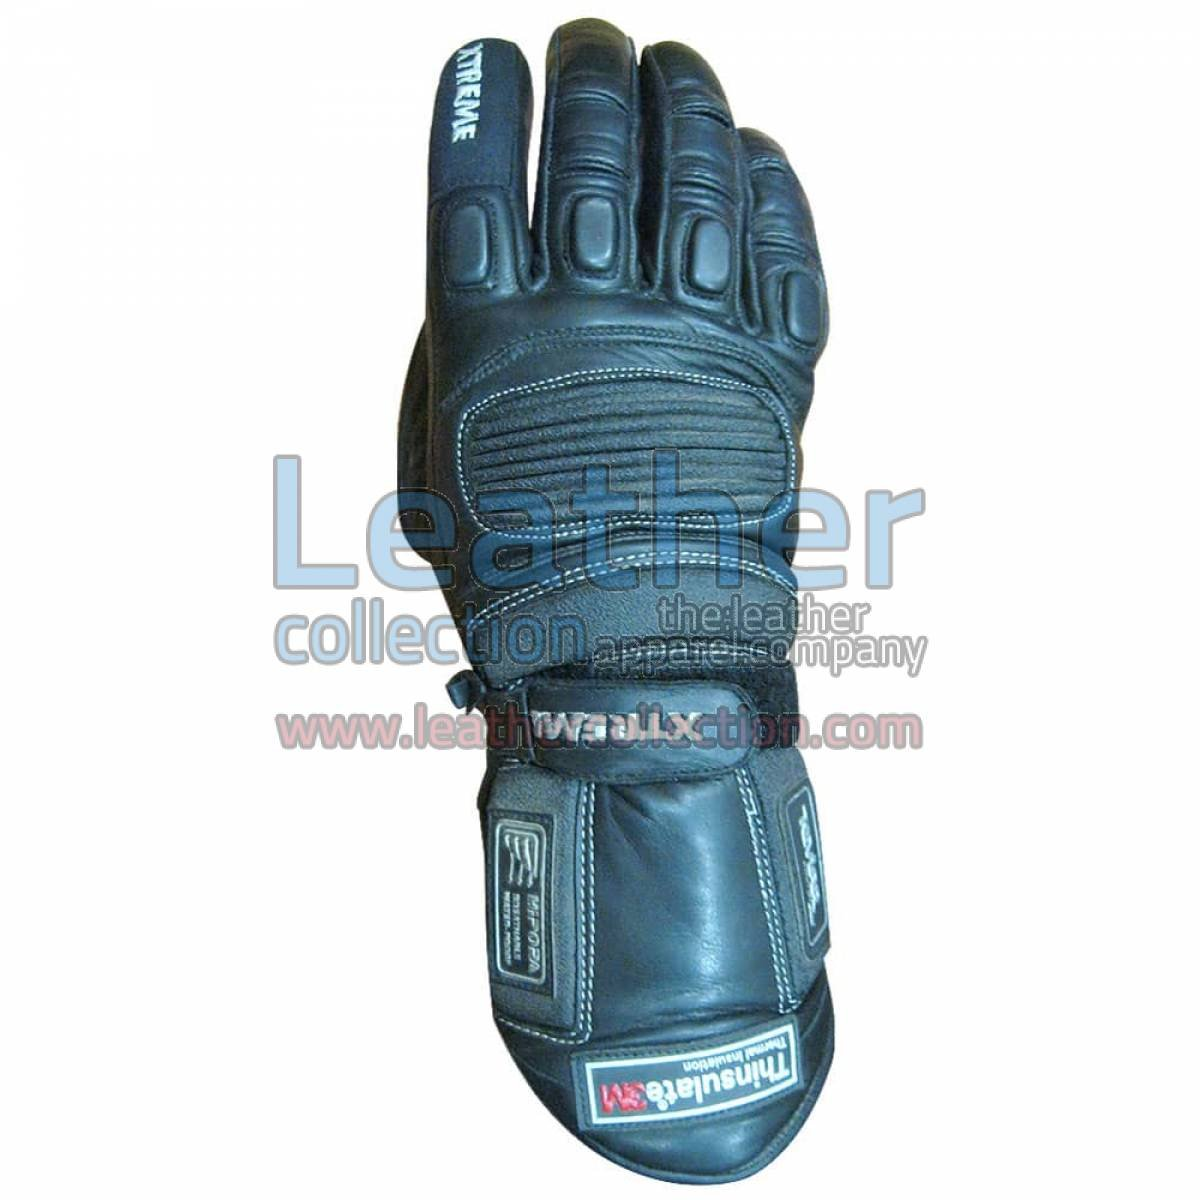 Stallion Leather Racing Gloves